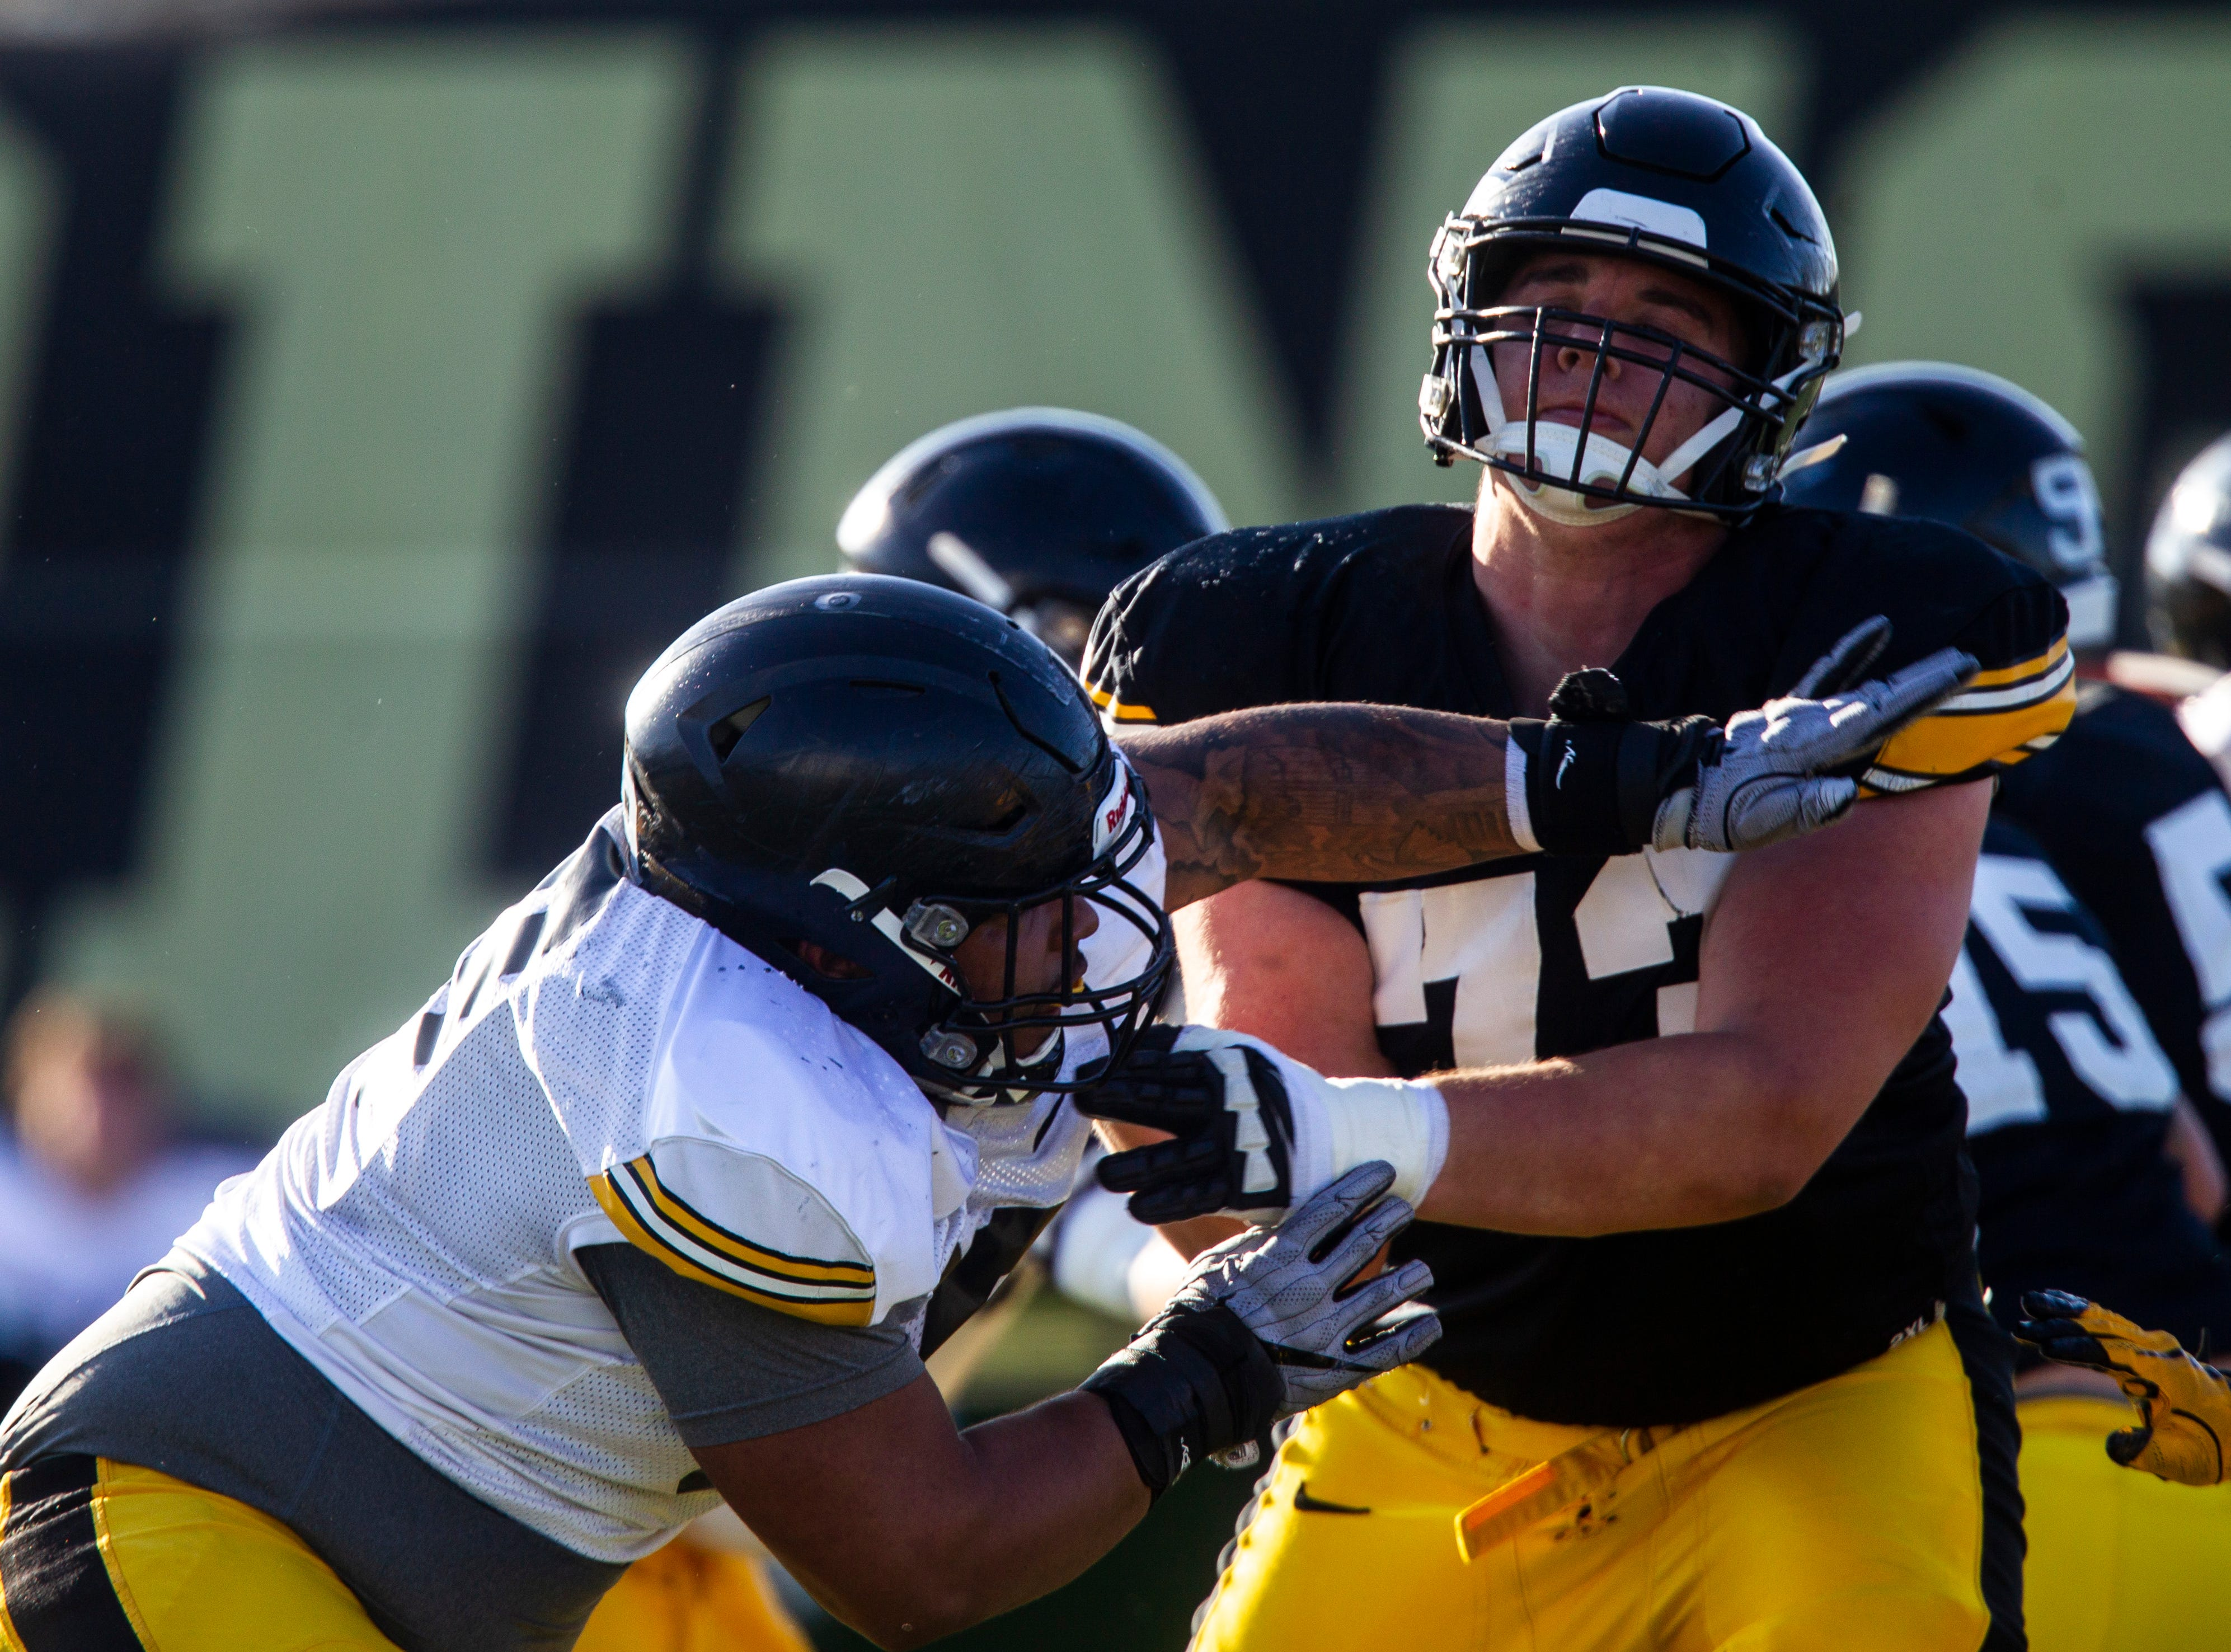 Iowa offensive lineman Cody Ince (73) blocks defensive lineman Noah Shannon (99) during the final spring football practice, Friday, April 26, 2019, at the University of Iowa outdoor practice facility in Iowa City, Iowa.